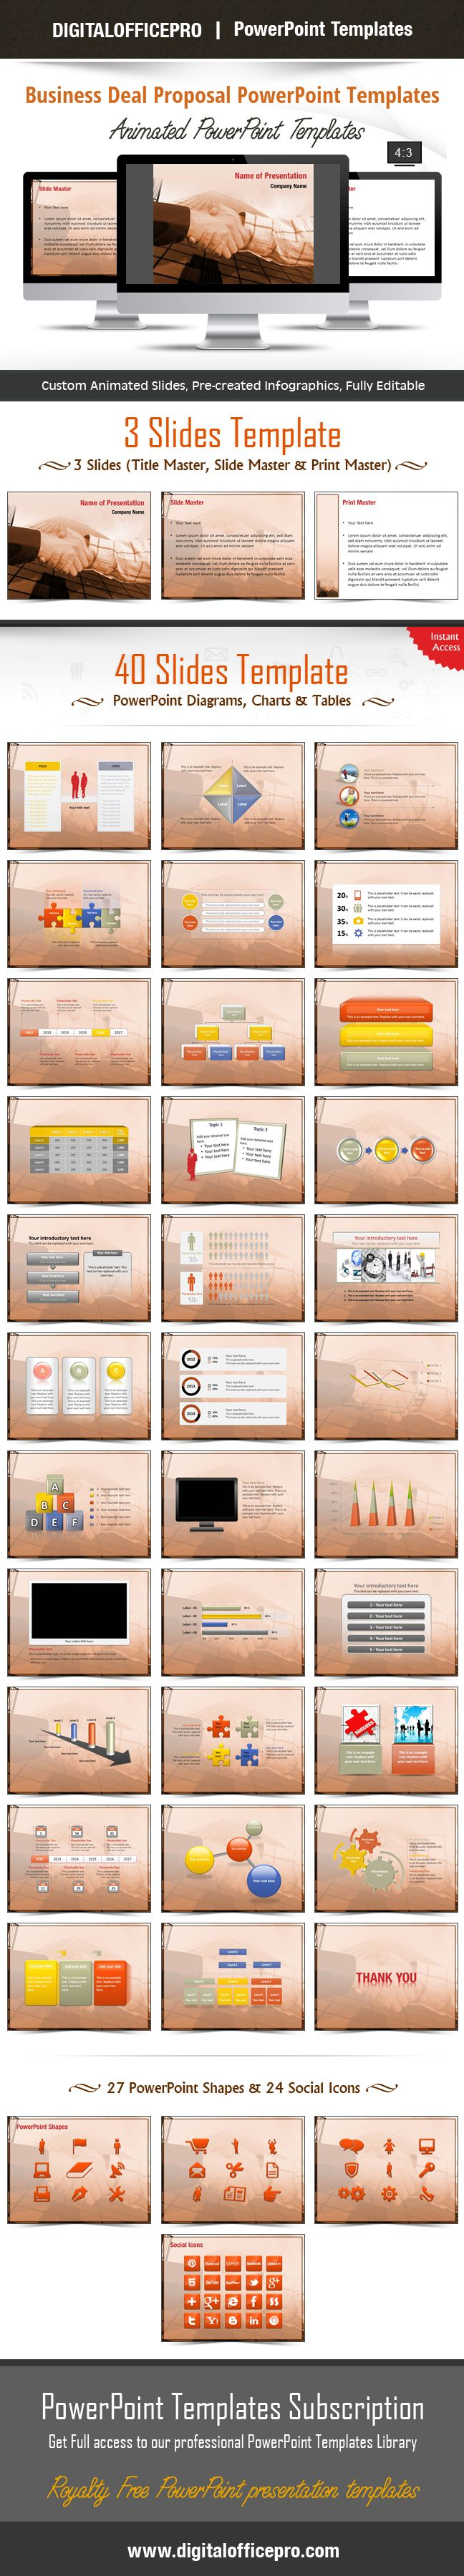 Impress and Engage your audience with Business Deal Proposal PowerPoint Template and Business Deal Proposal PowerPoint Backgrounds from DigitalOfficePro. Each template comes with a set of PowerPoint Diagrams, Charts & Shapes and are available for instant download.